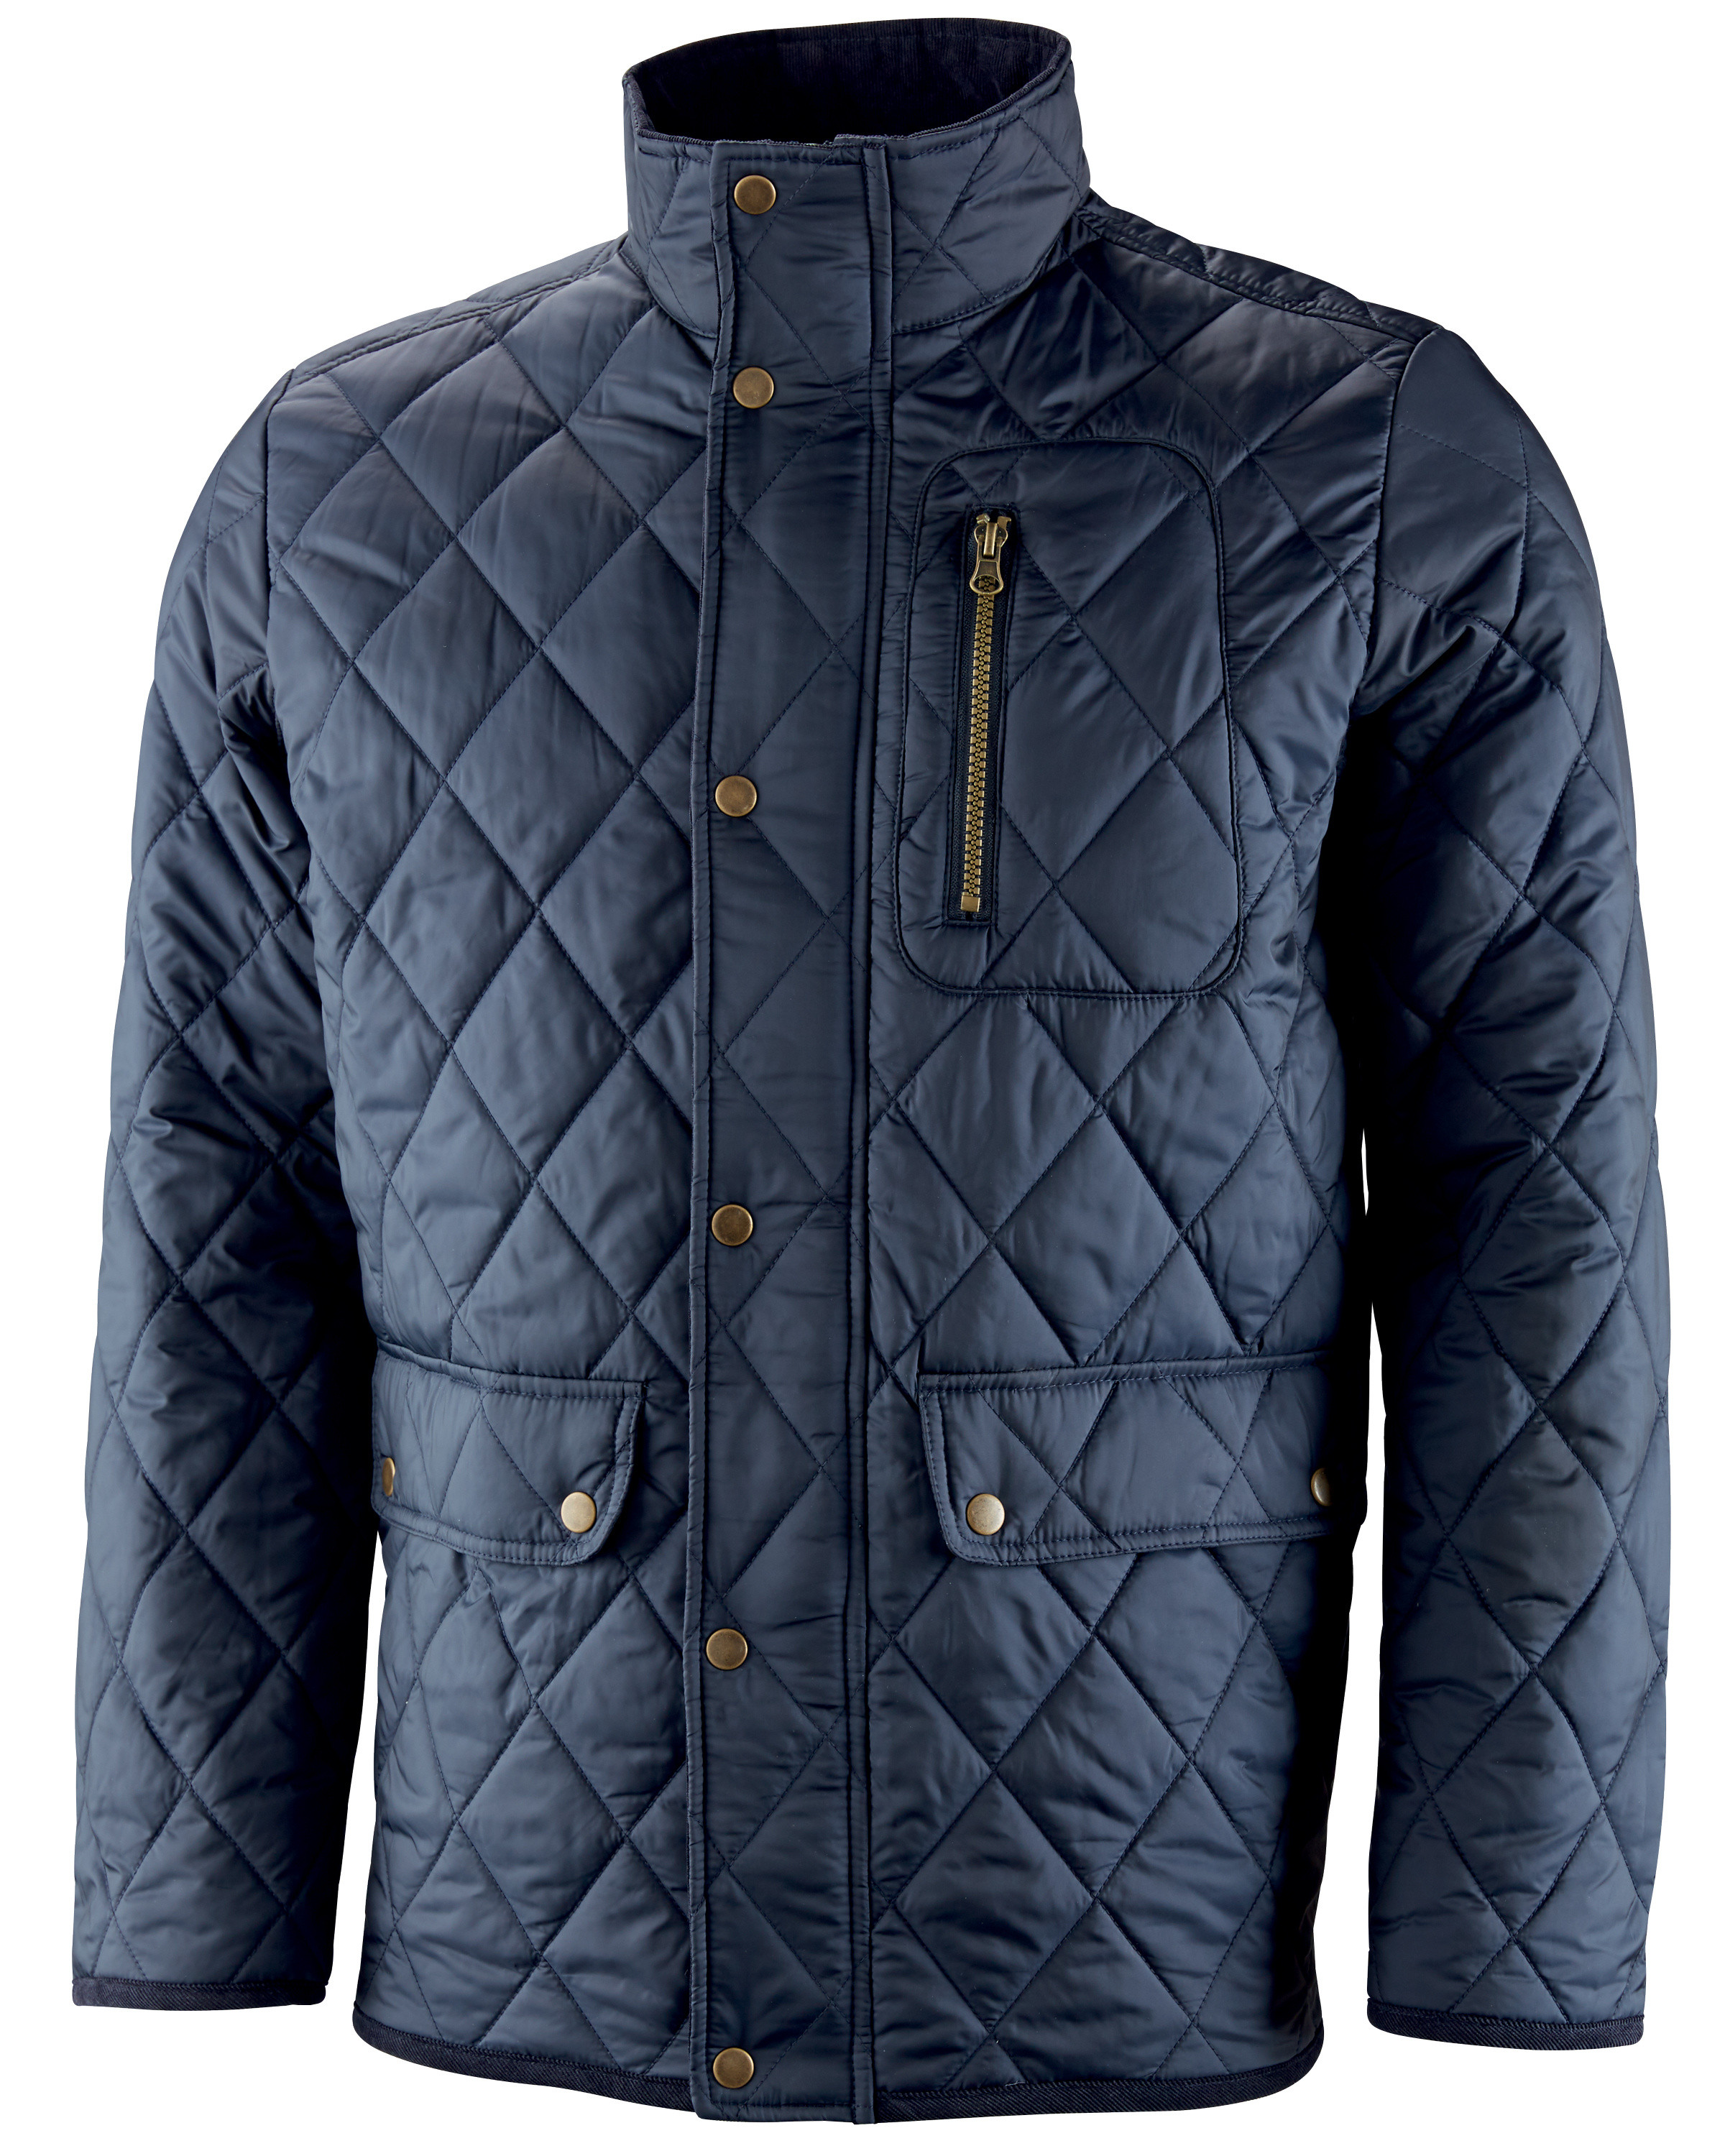 Men's Quilted Jacket - ALDI UK : mens quilted coats uk - Adamdwight.com